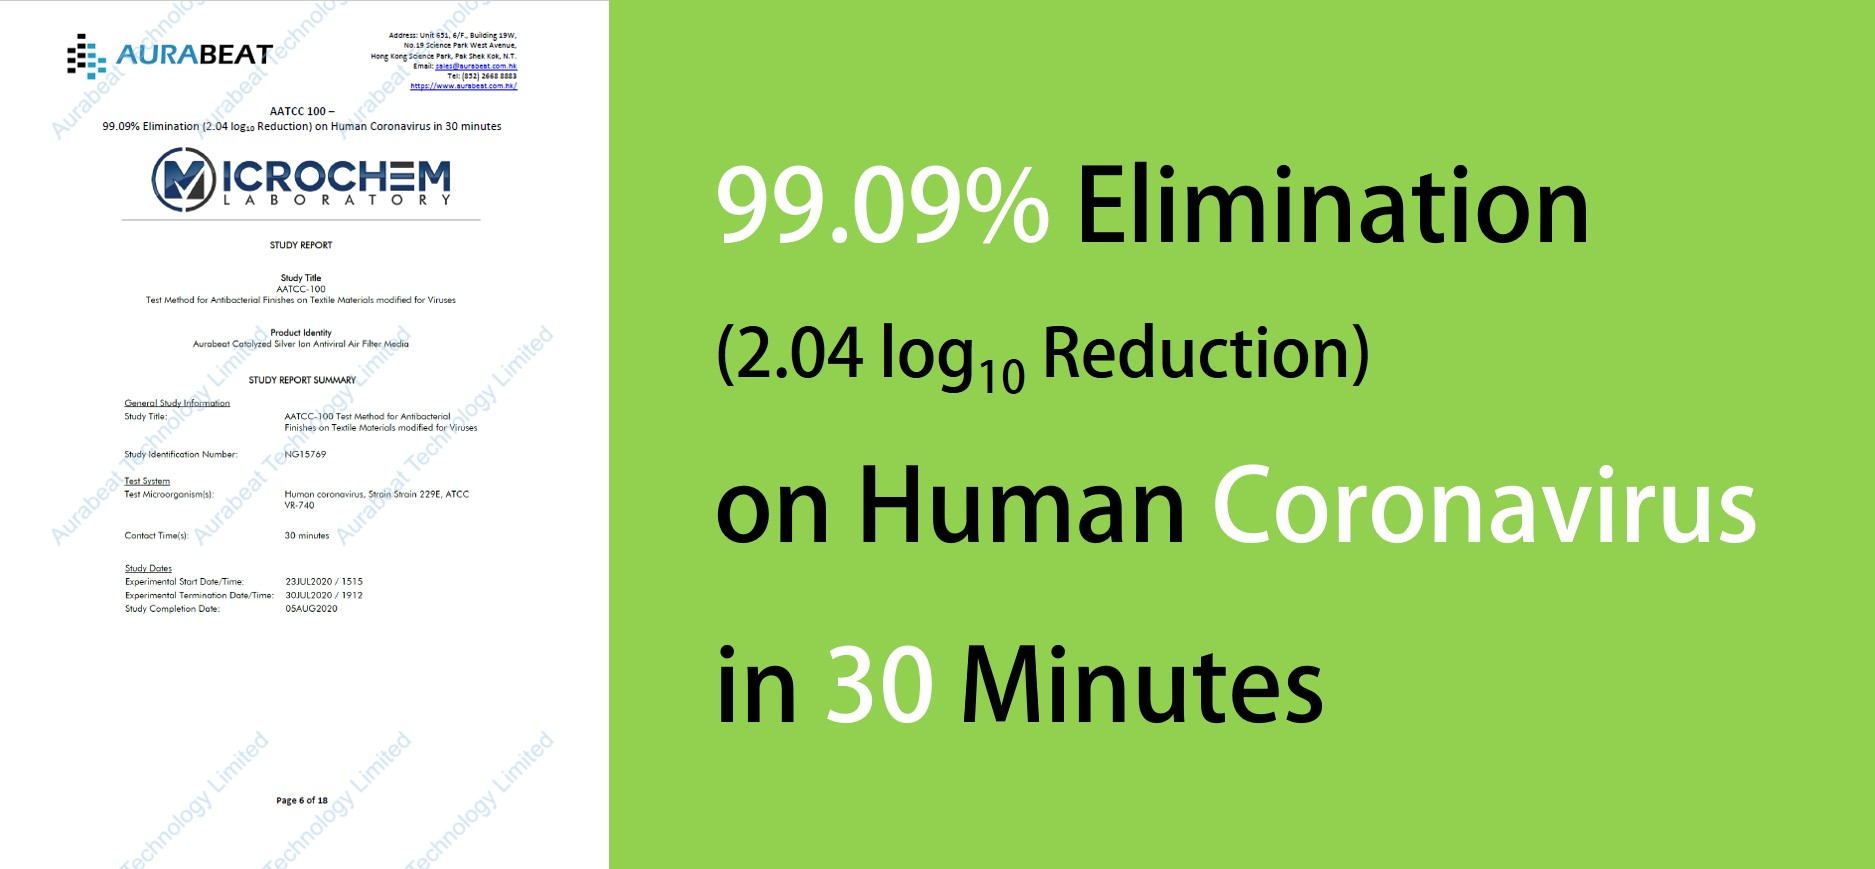 AuraBeat testing results on 99.09% elimination on Human Coronavirus in 30 Minutes